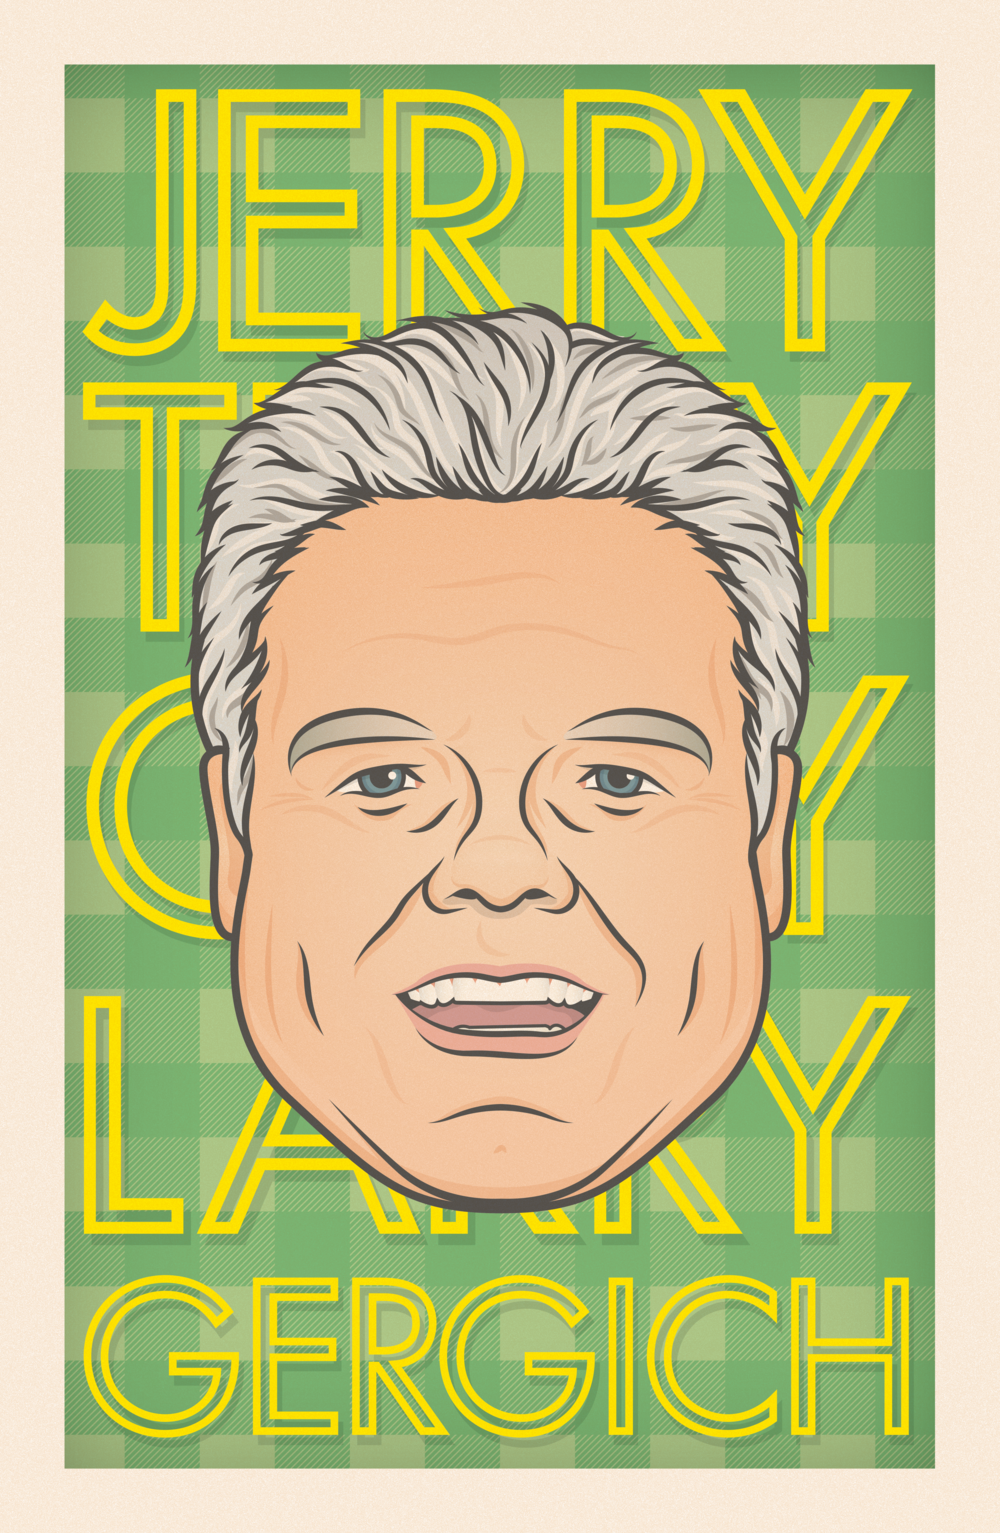 JERRY_11x17.png